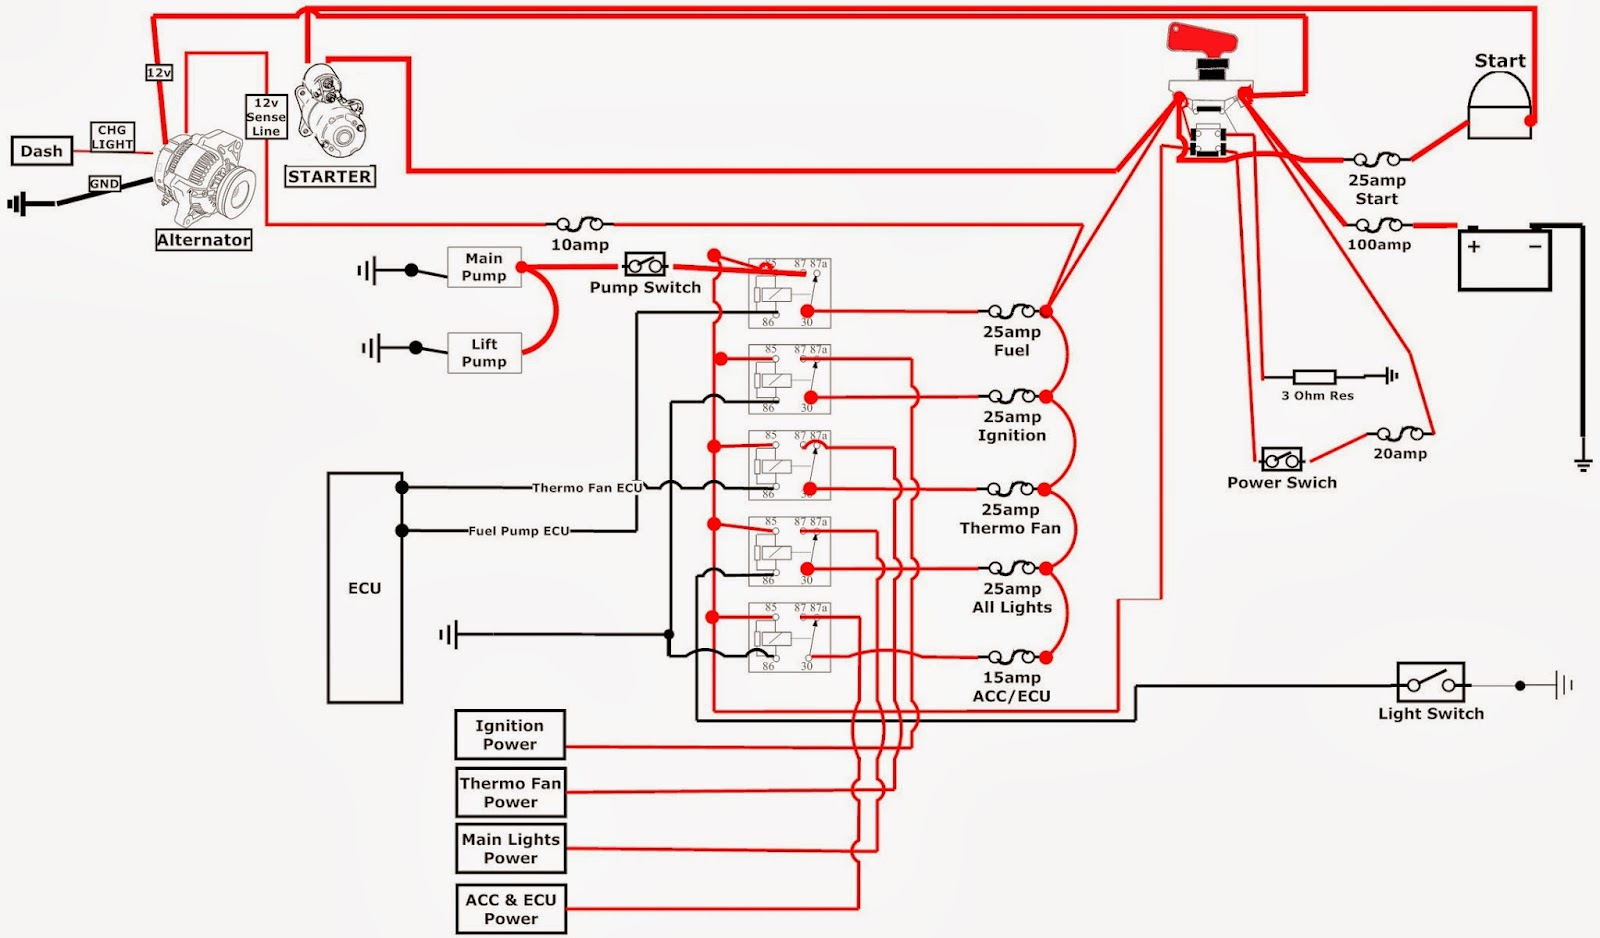 DIAGRAM] Nissan 200sx Headlight Wiring Diagram FULL Version HD Quality Wiring  Diagram - DNAREPLICATIONDIAGRAM.VAGALUME.FRvagalume.fr